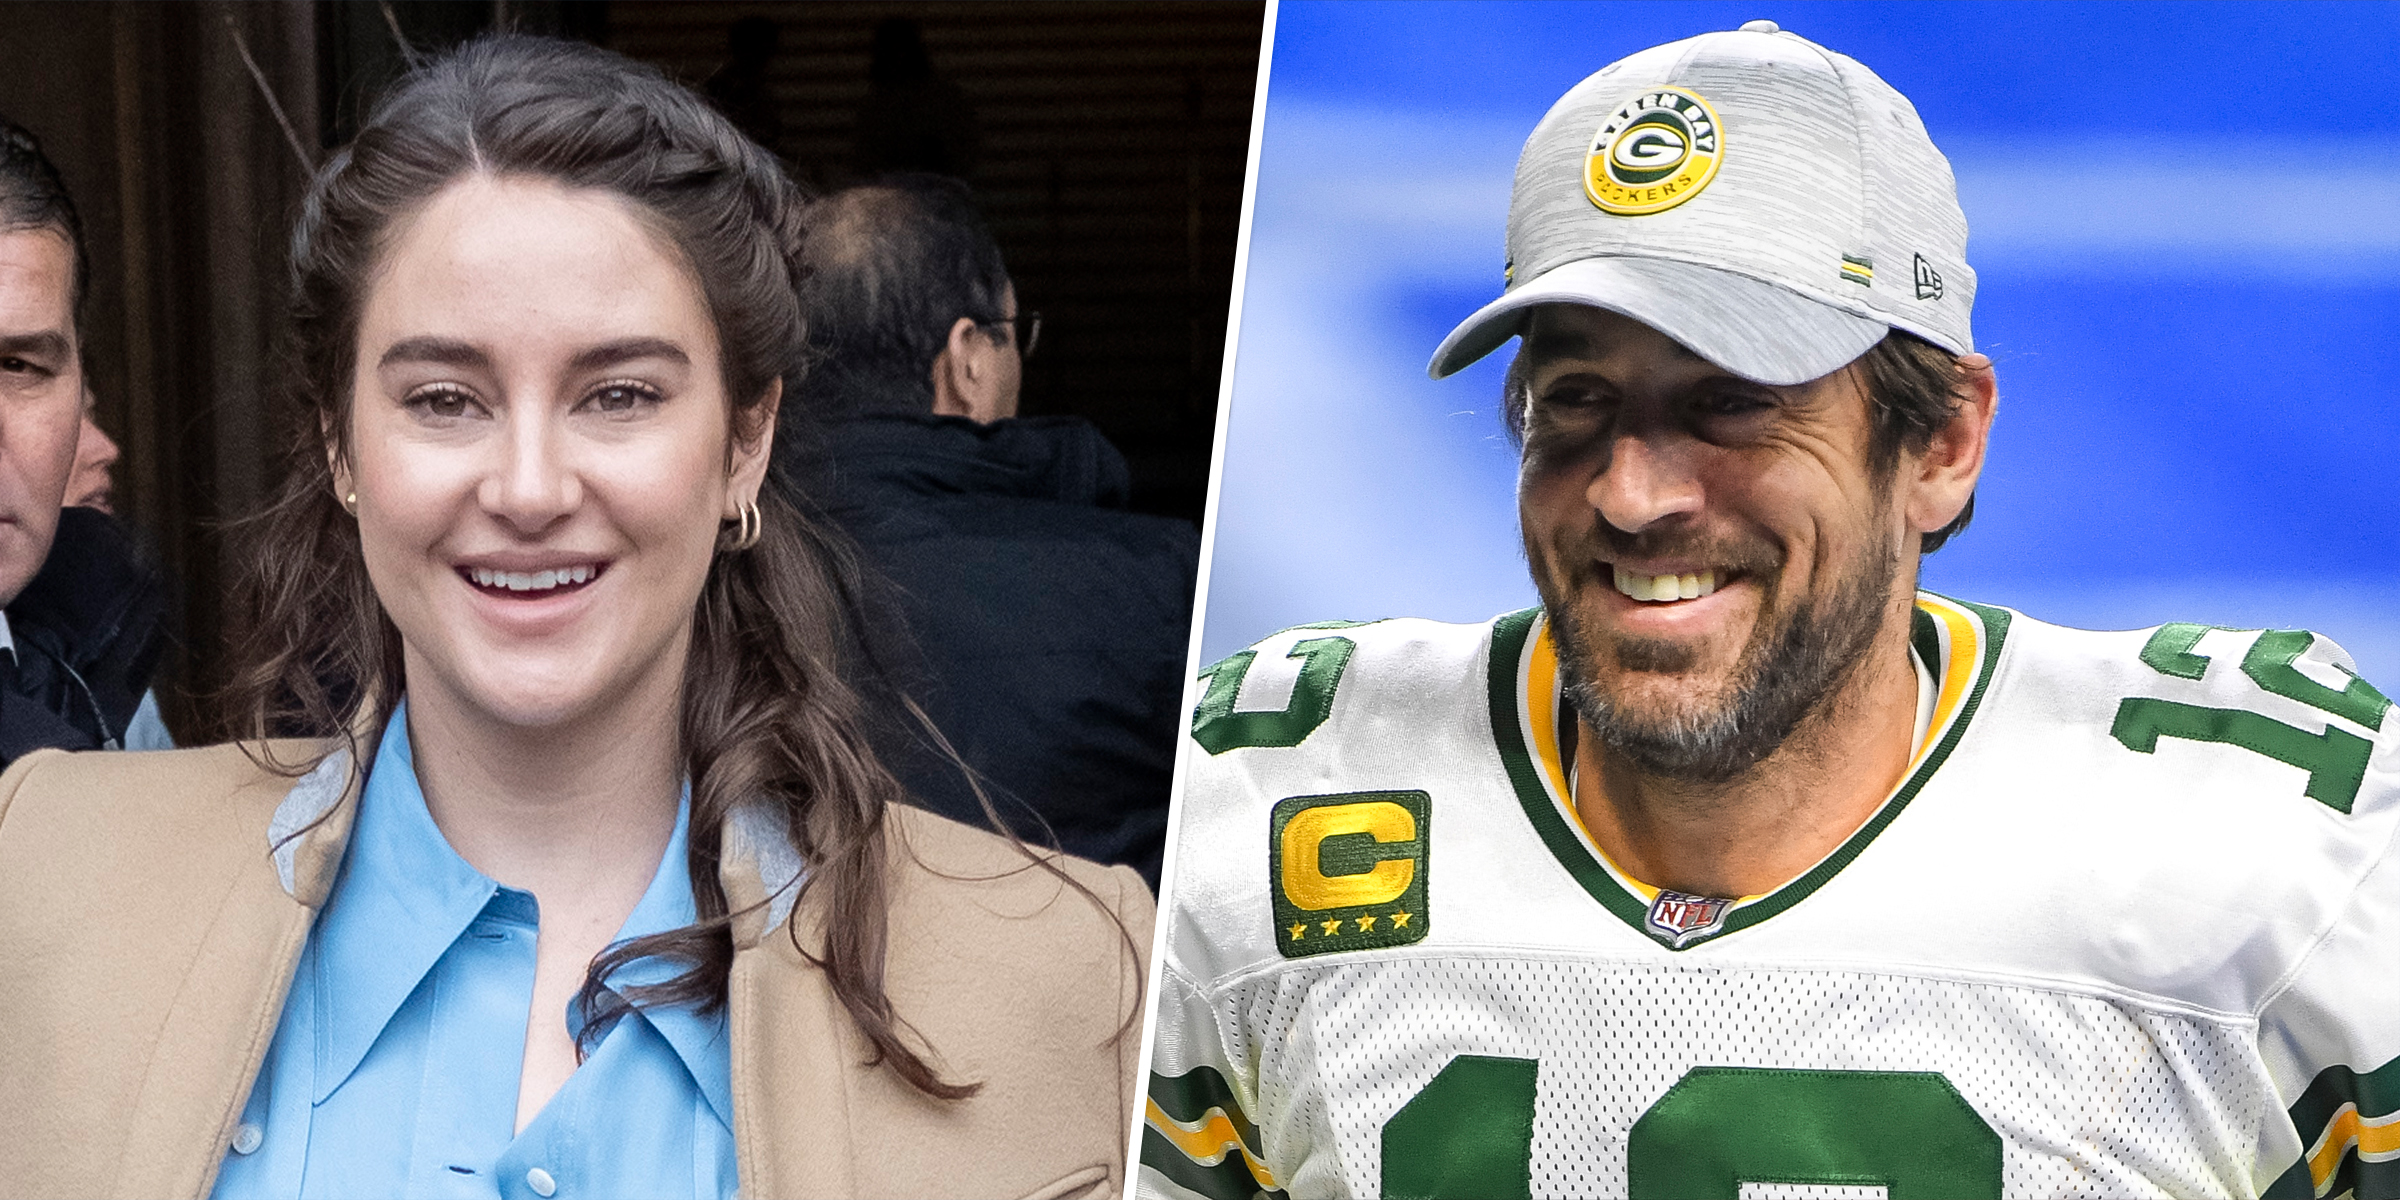 Shailene-Woodley-engaged-to-Green-Bay-Packers-quarterback-Aaron-Rodgers